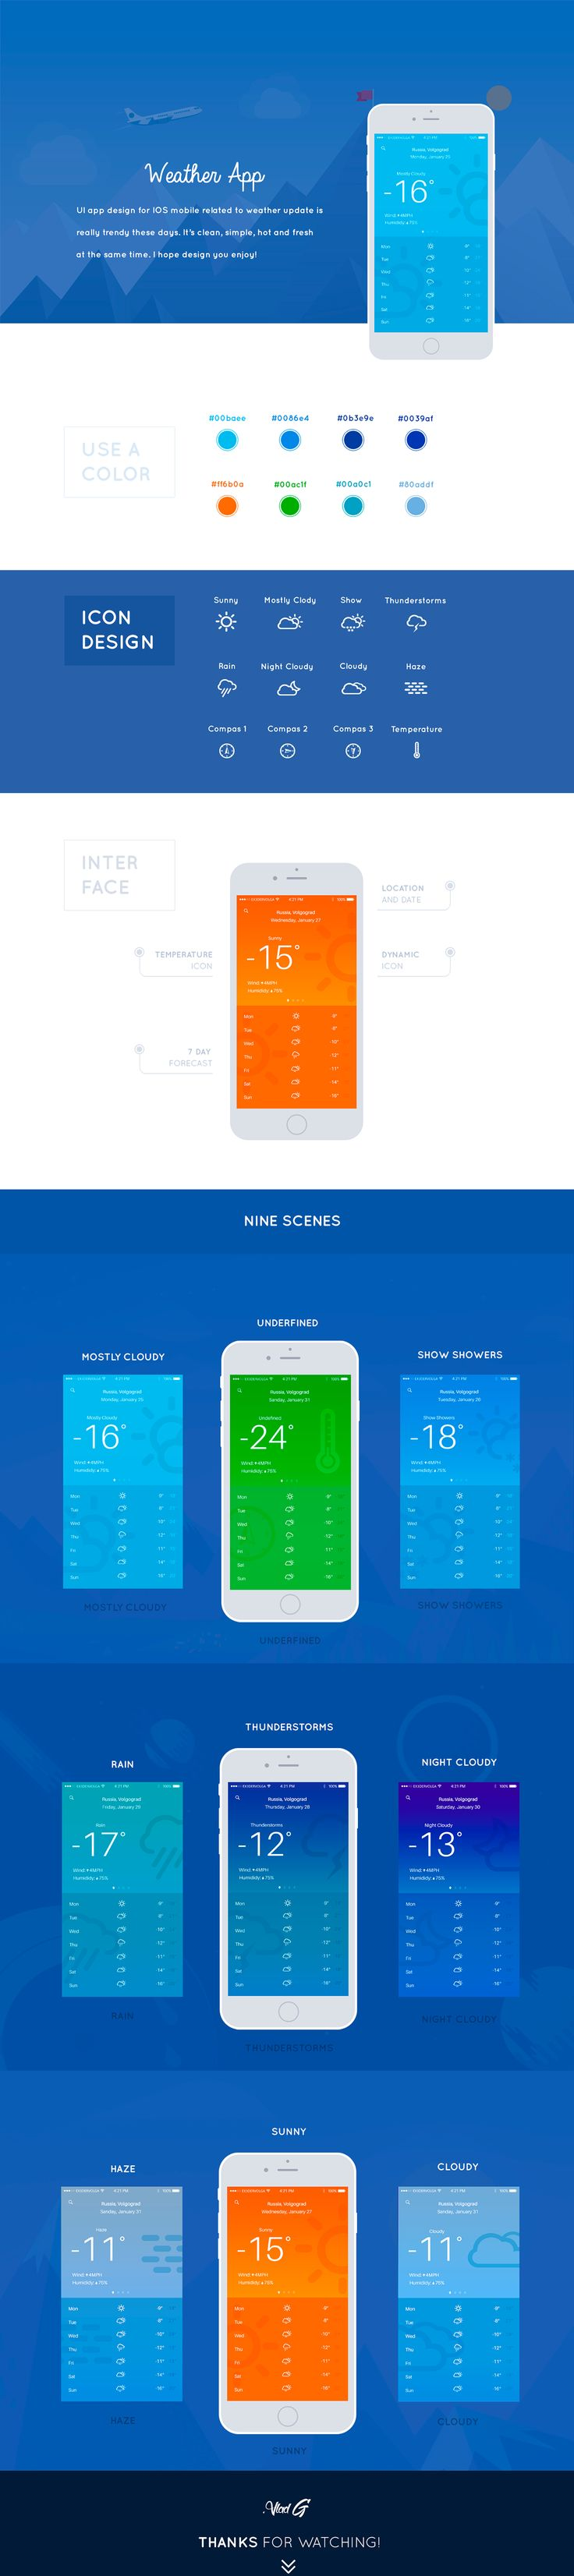 Weather App for iOS 9.2 (Mobile UI Design) on Behance